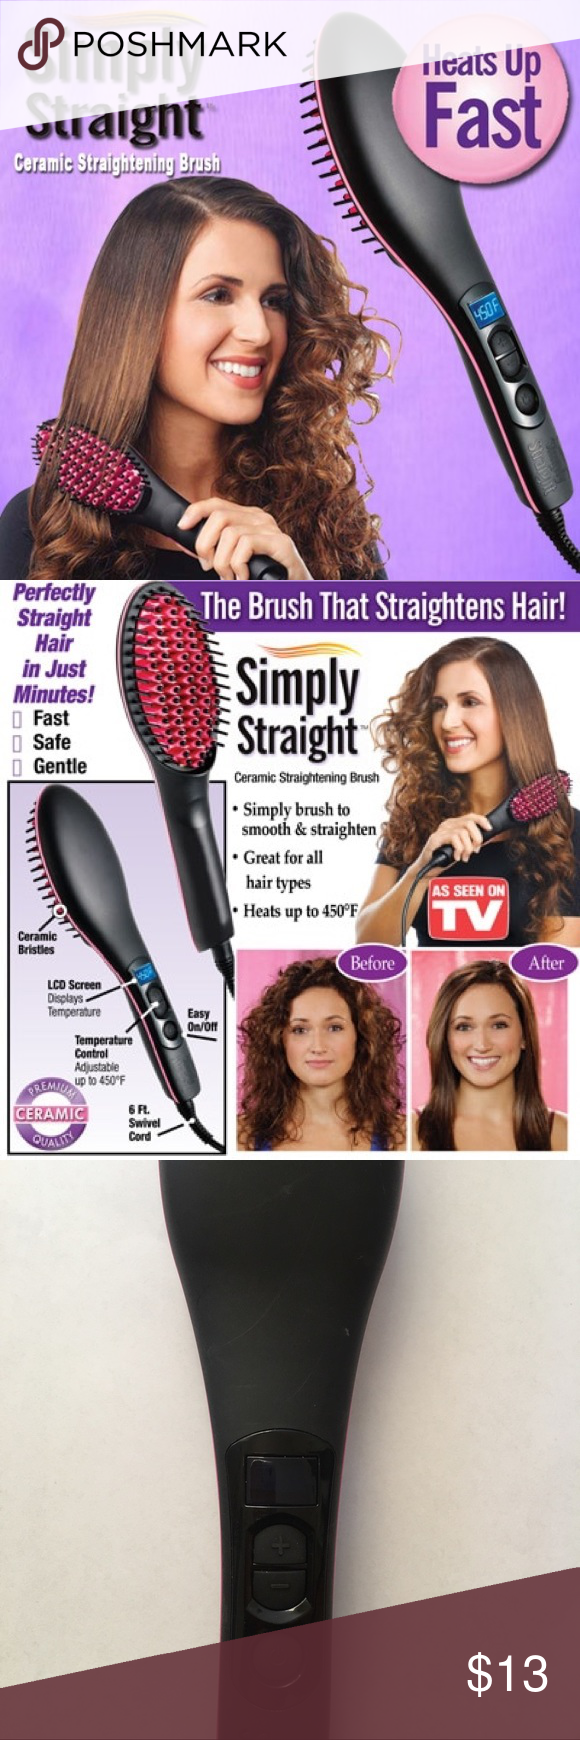 Simply Straightening Hair Brush As Seen On Tv Straight Ceramic Works Well I Ve Only Used Once Got It For